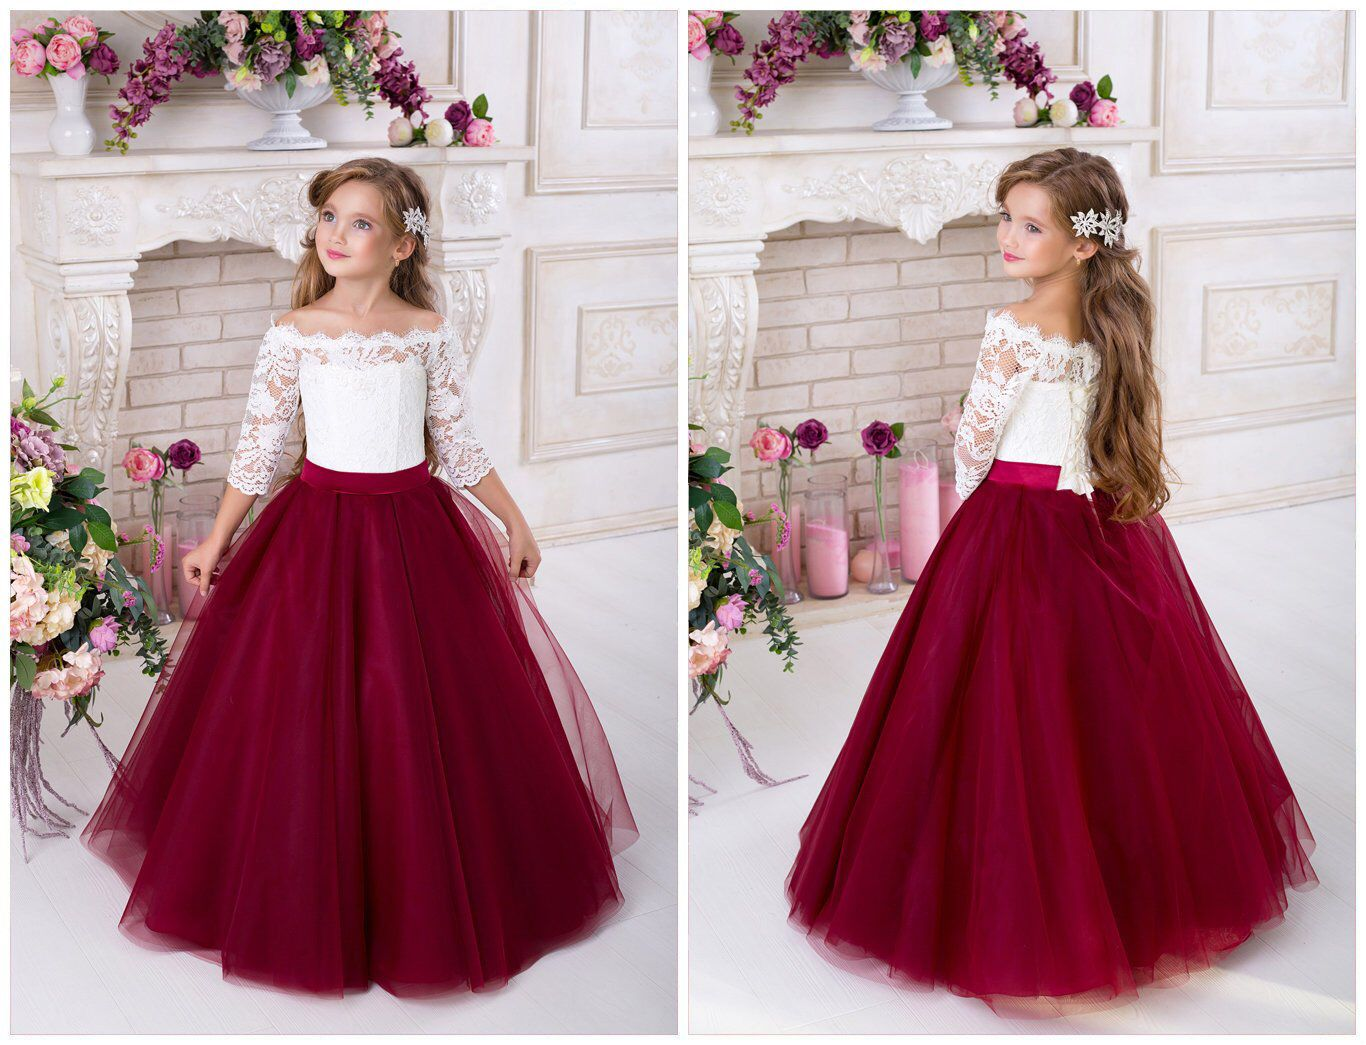 Pin By Nilaby Charbonier On Our Wedding Ideas Long Flower Girl Dresses Flower Girl Dresses Champagne Burgundy Flower Girl Dress